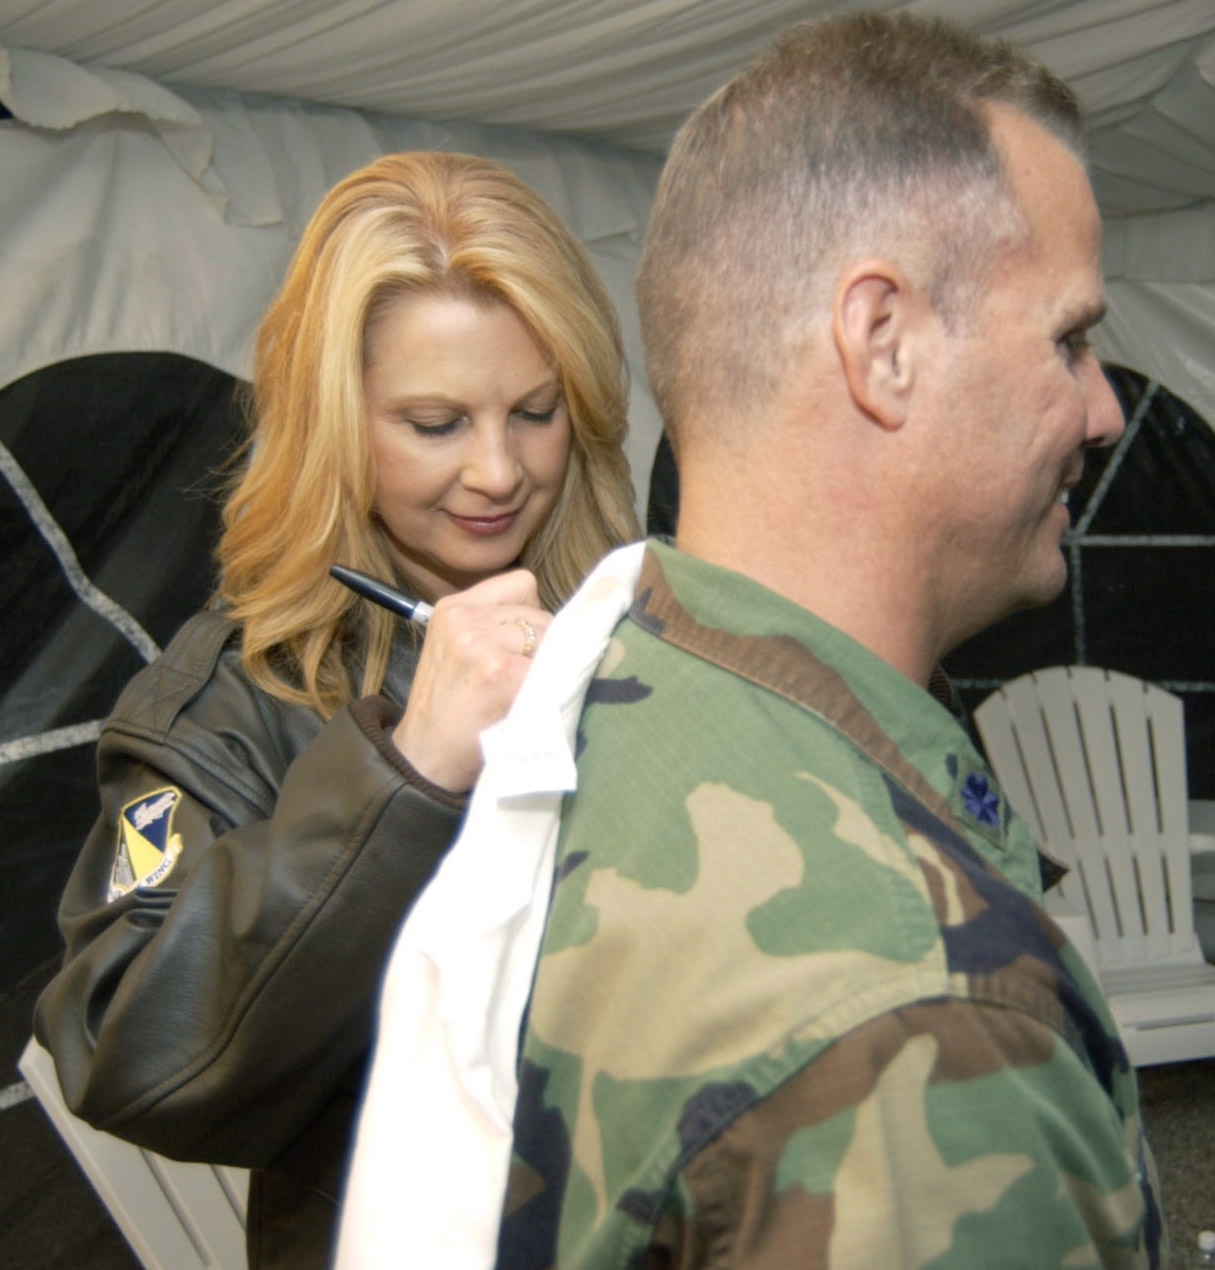 http://upload.wikimedia.org/wikipedia/commons/6/65/Patty_Loveless_signing_shirt.jpg